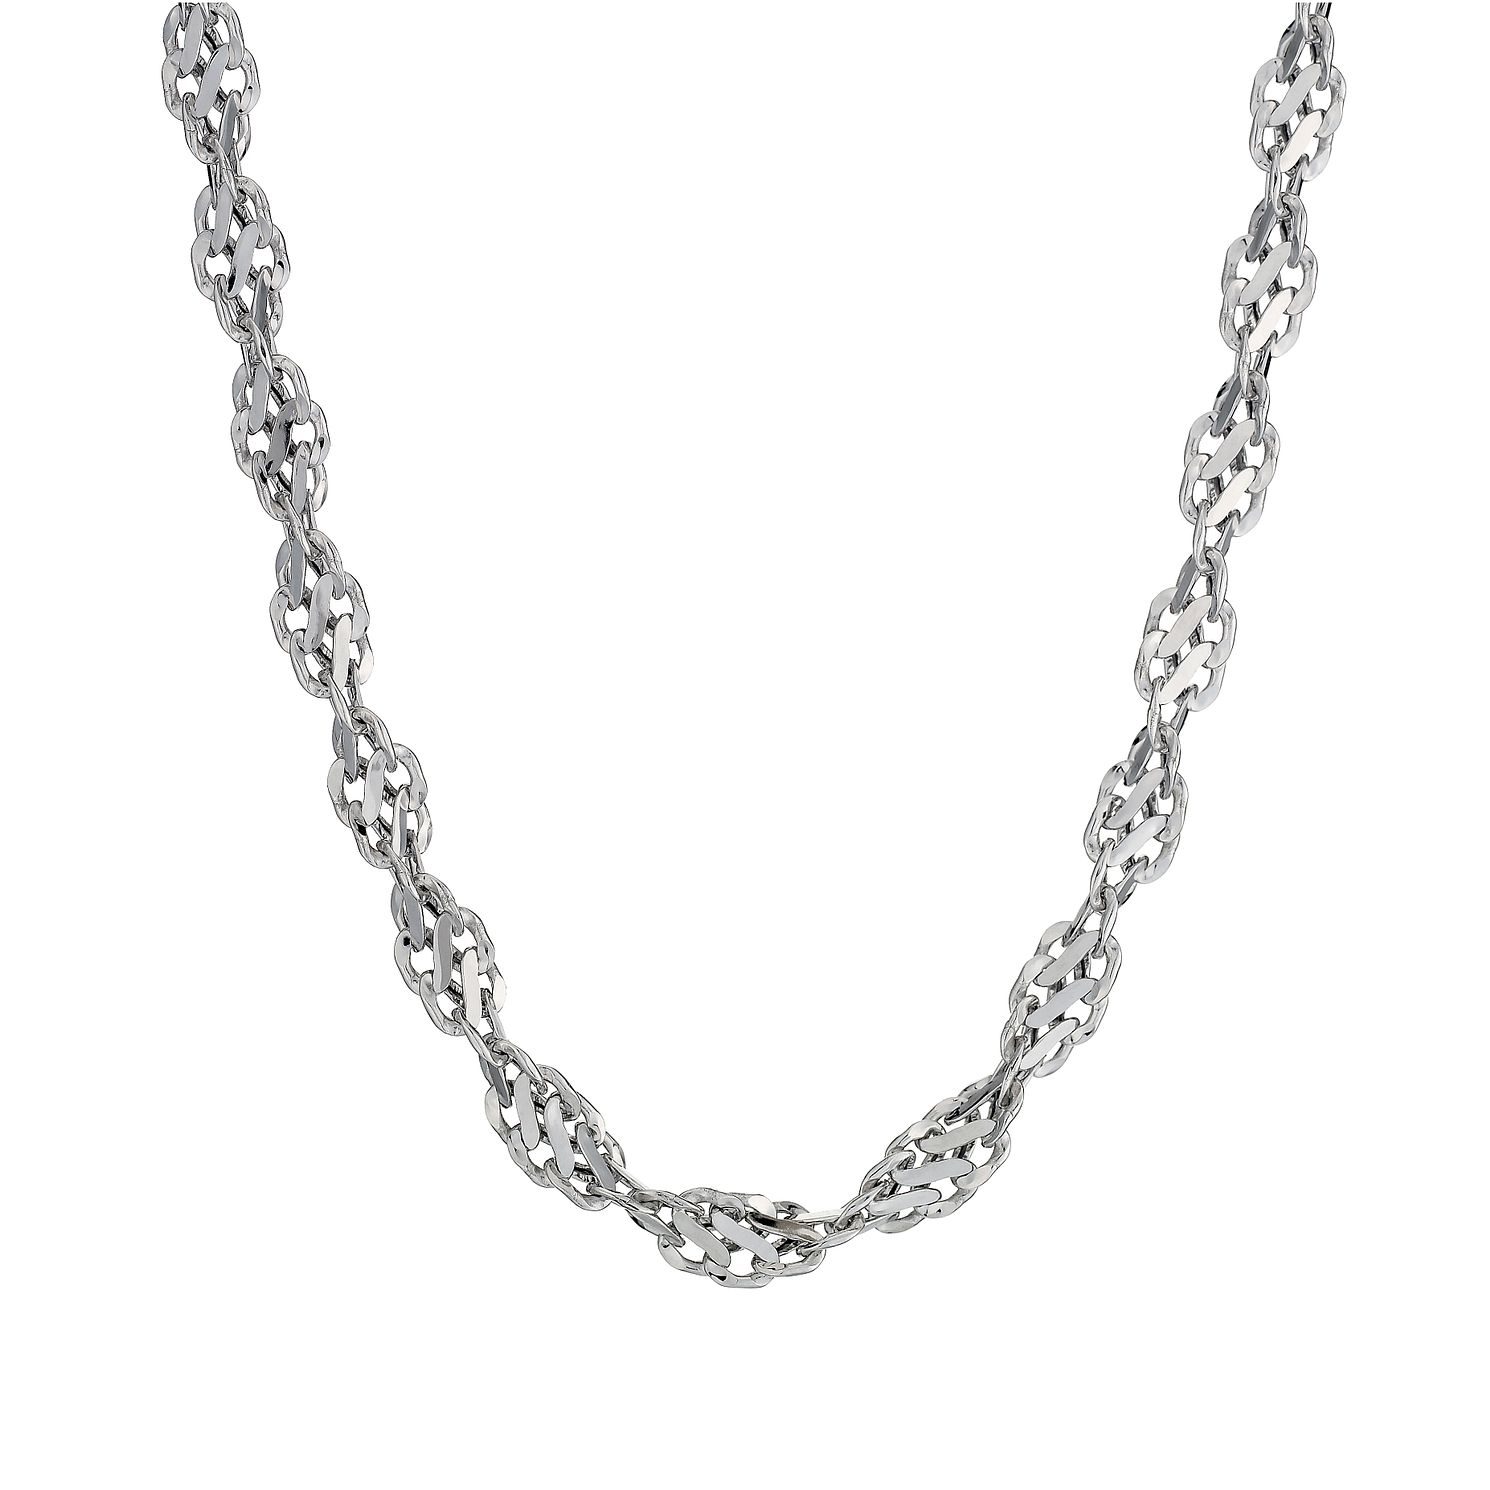 9ct White Gold Cut Out Twist Necklace 18